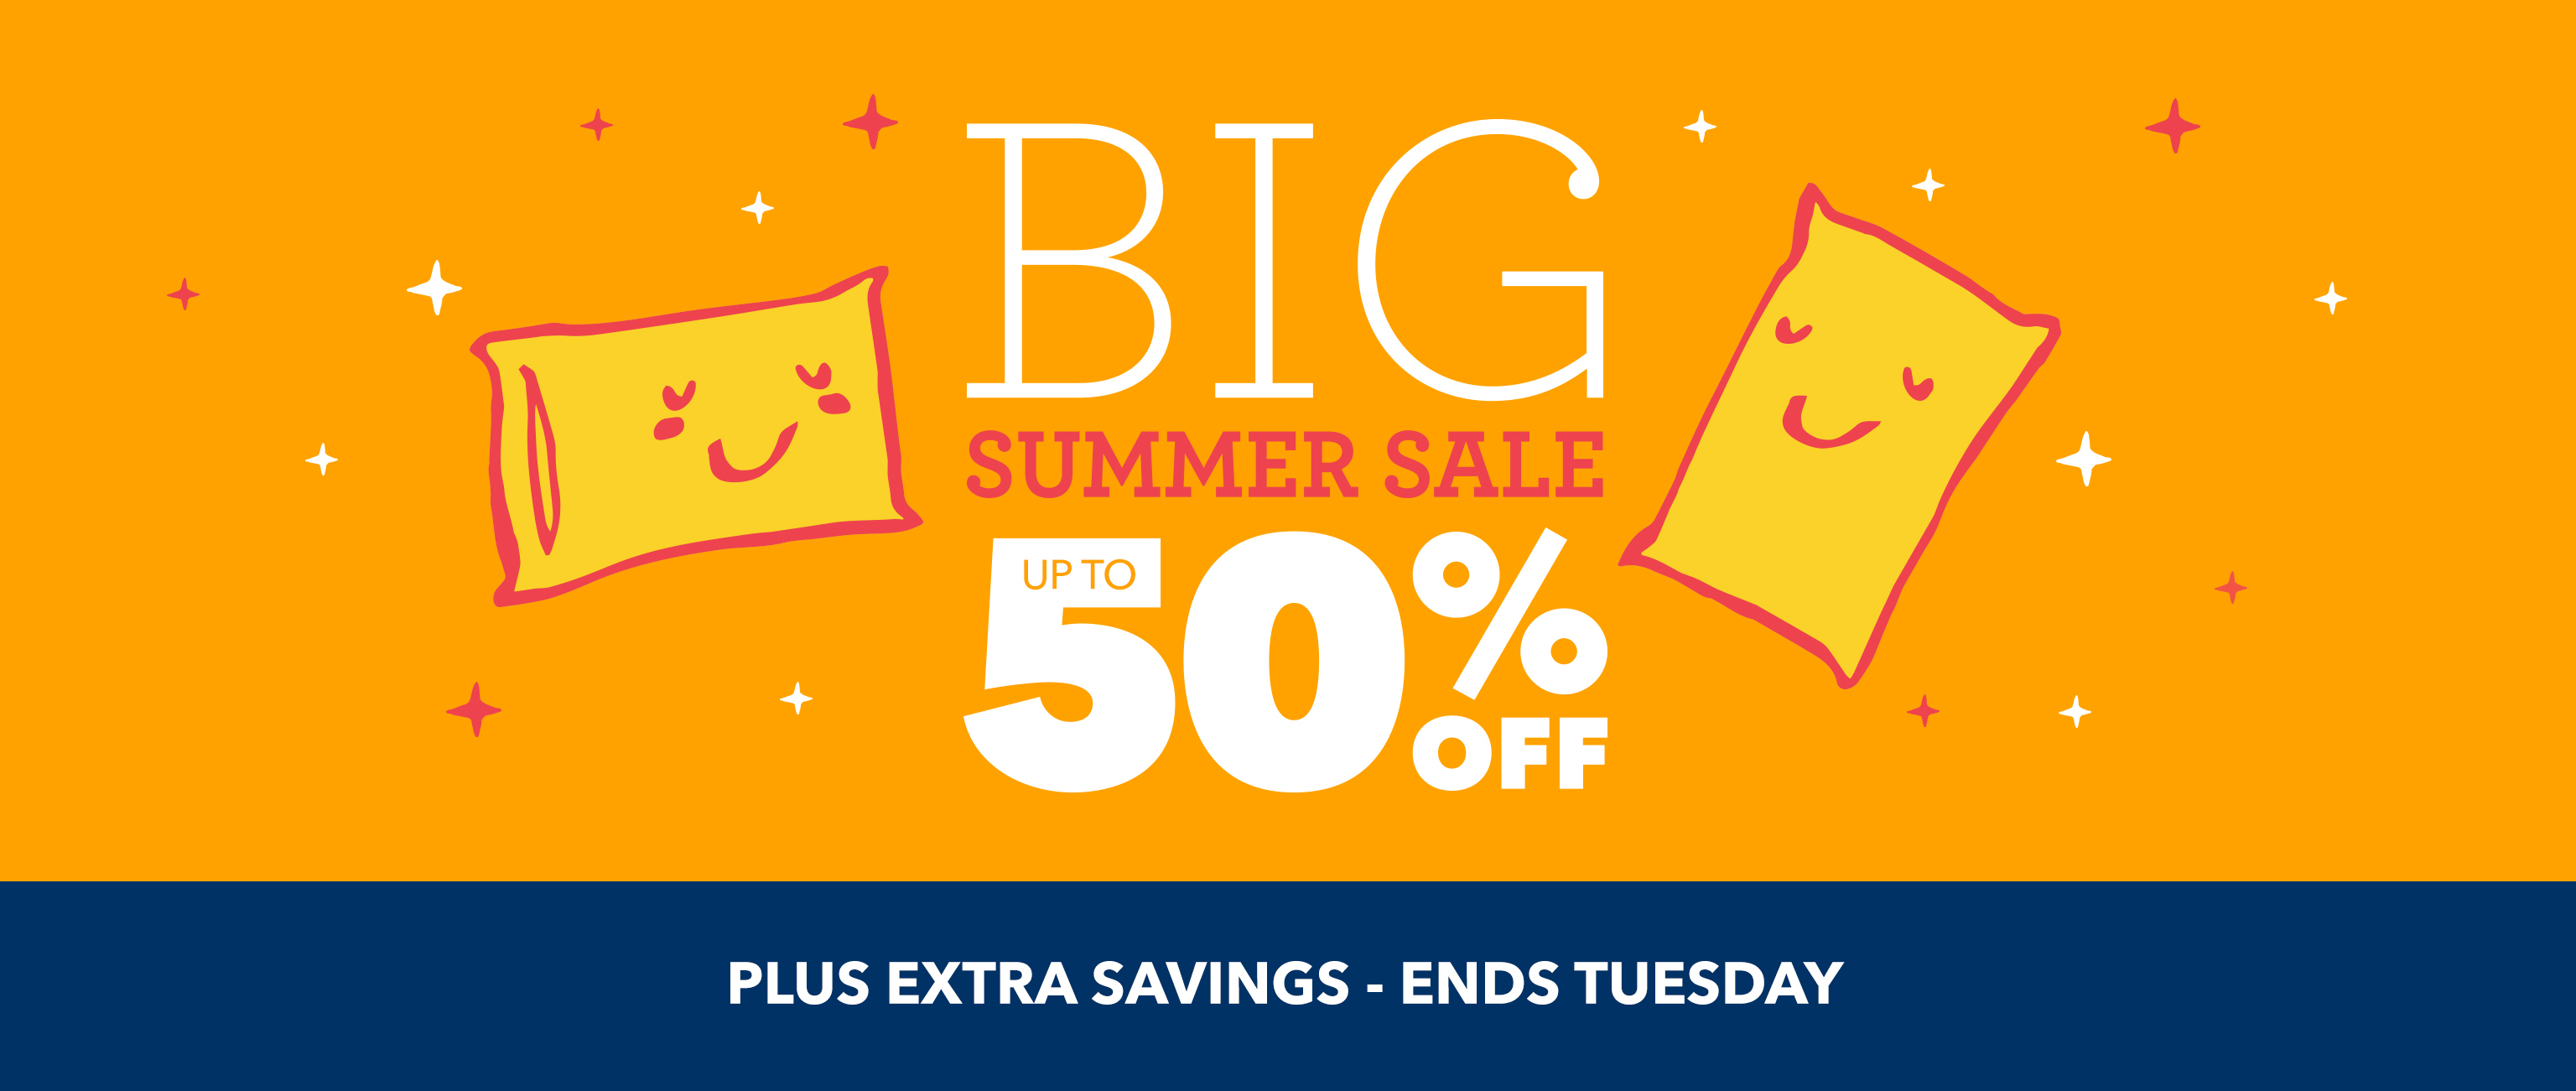 homepage - big summer sale - ends tuesday